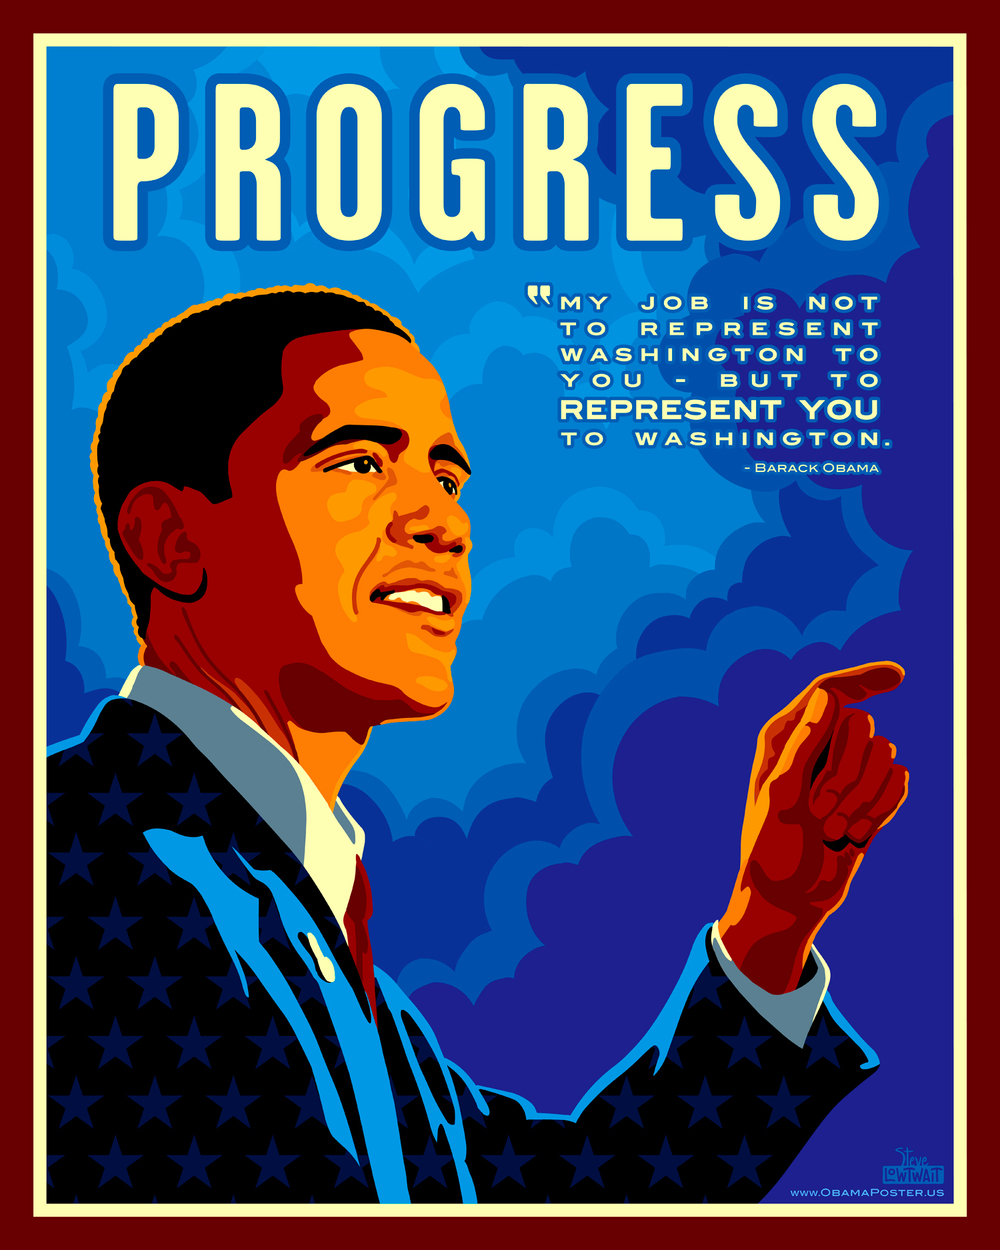 Progress • Poster to support President Obama's 2008 campaign